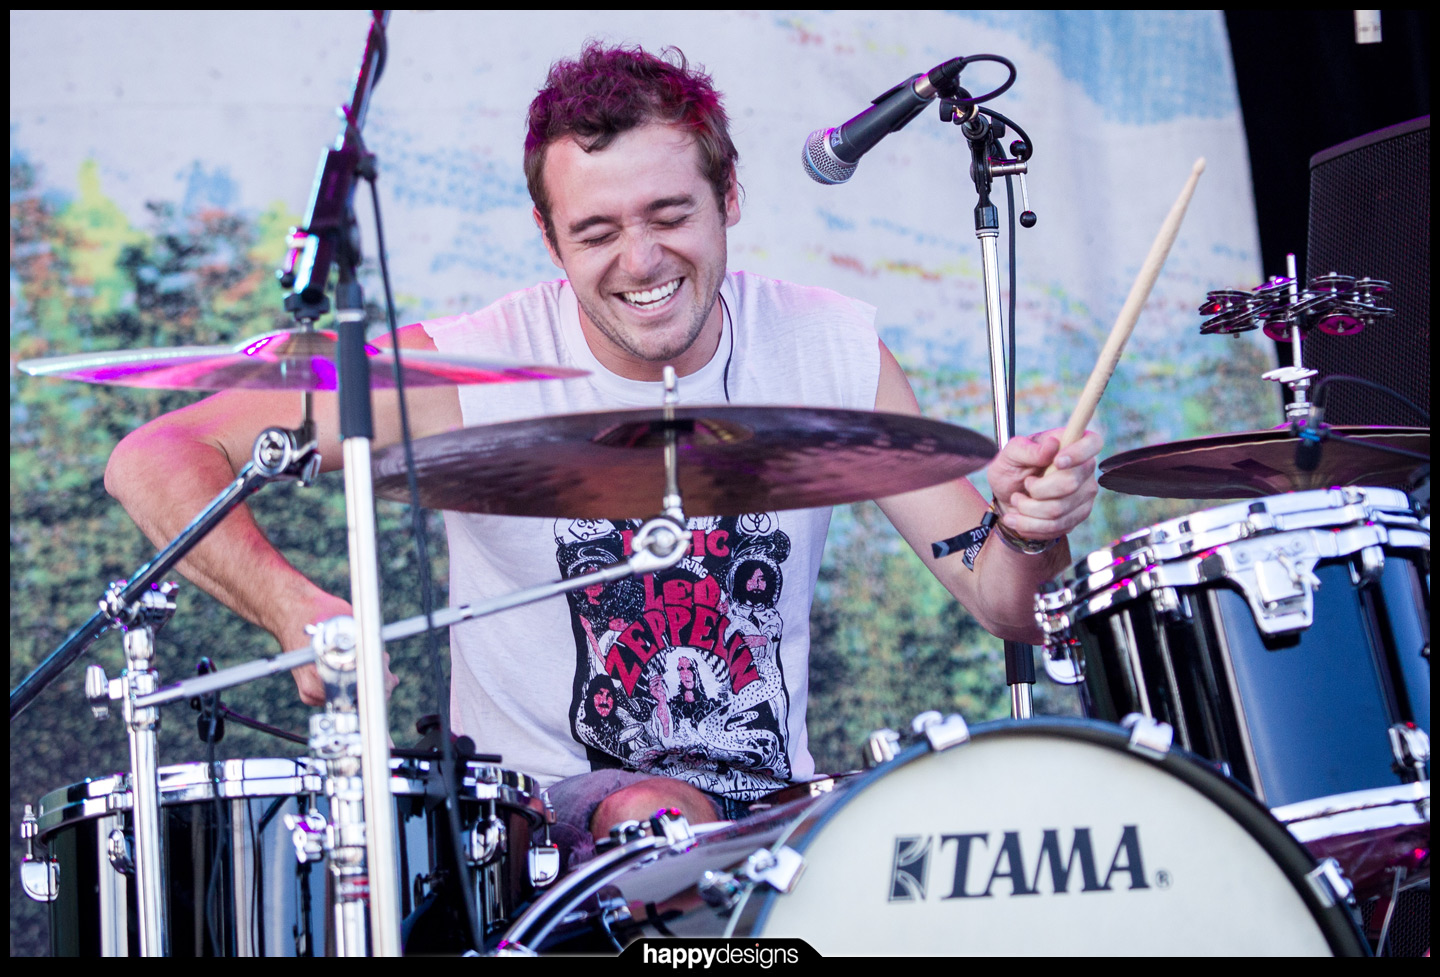 20120925 - the drummers of R5-0002